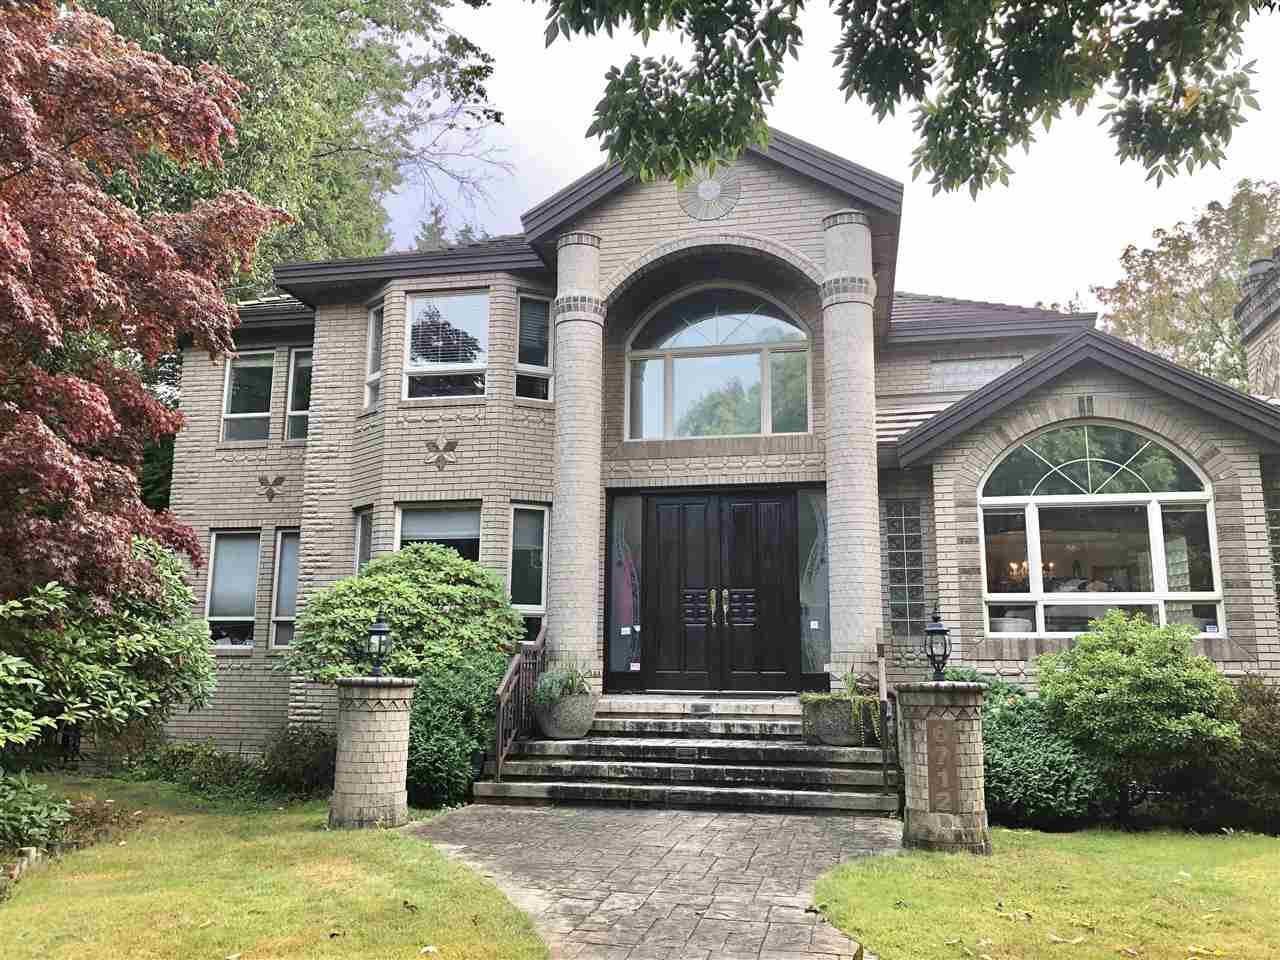 Main Photo: 6712 SELKIRK Street in Vancouver: South Granville House for sale (Vancouver West)  : MLS®# R2498645